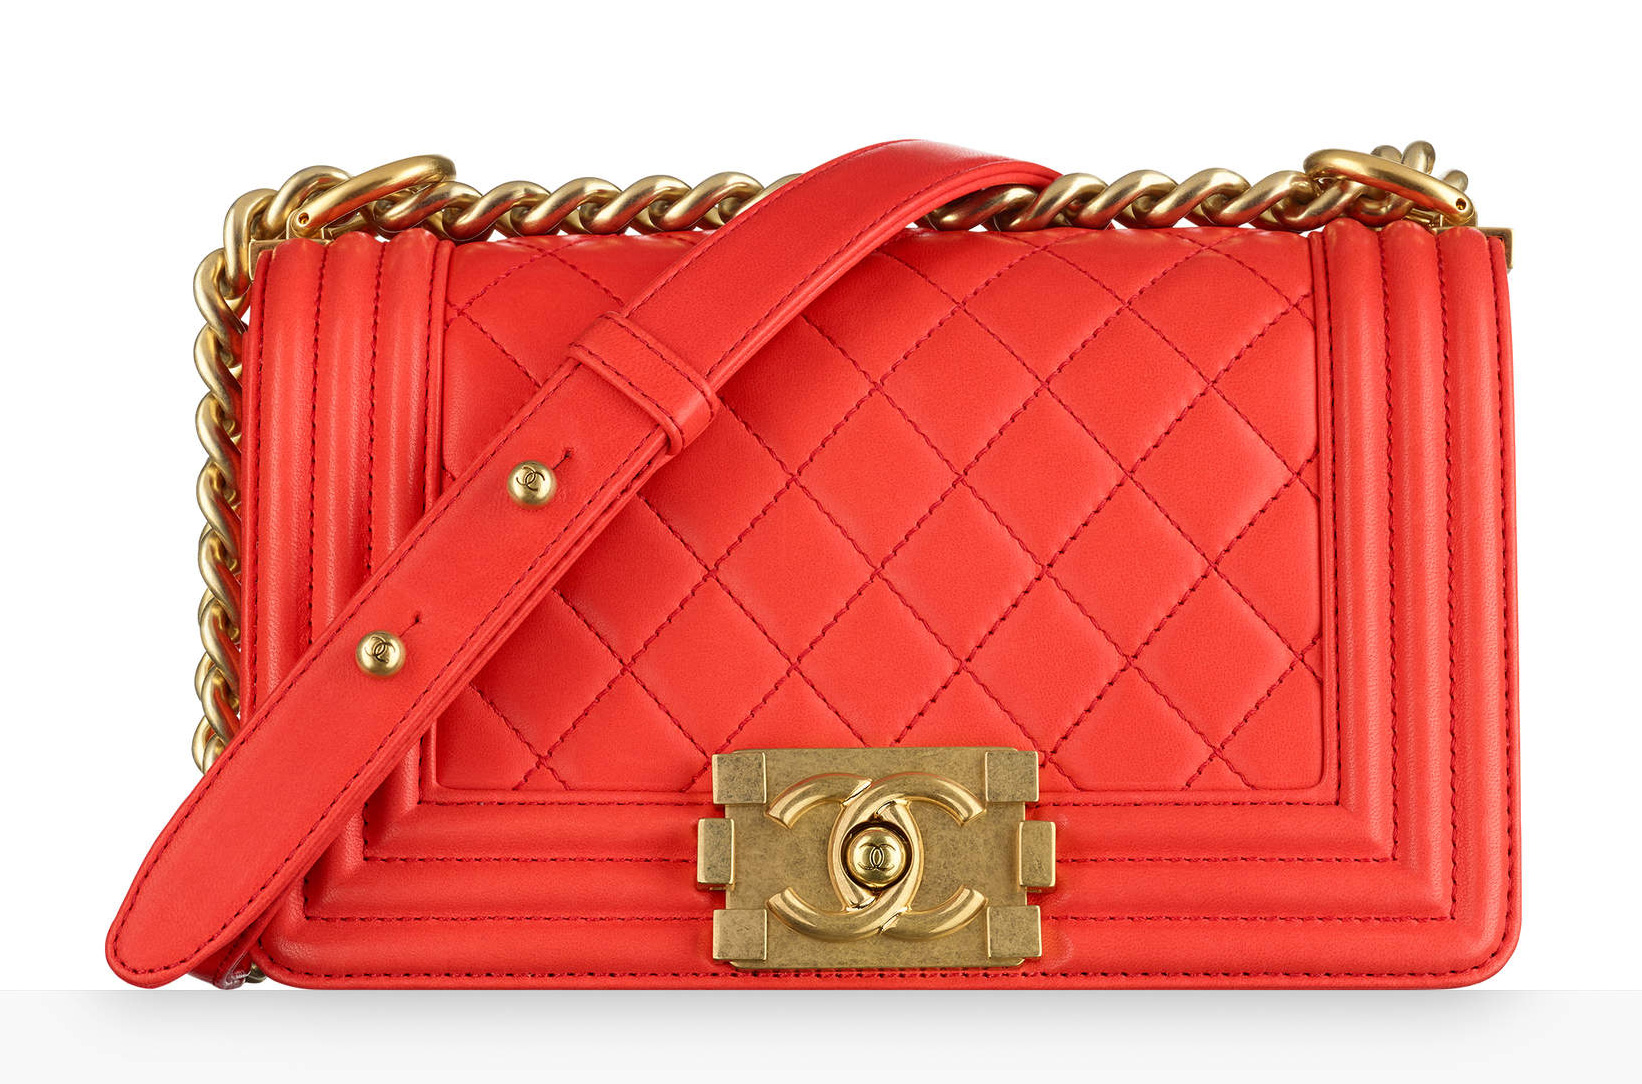 chanel-boy-bag-coral-4300